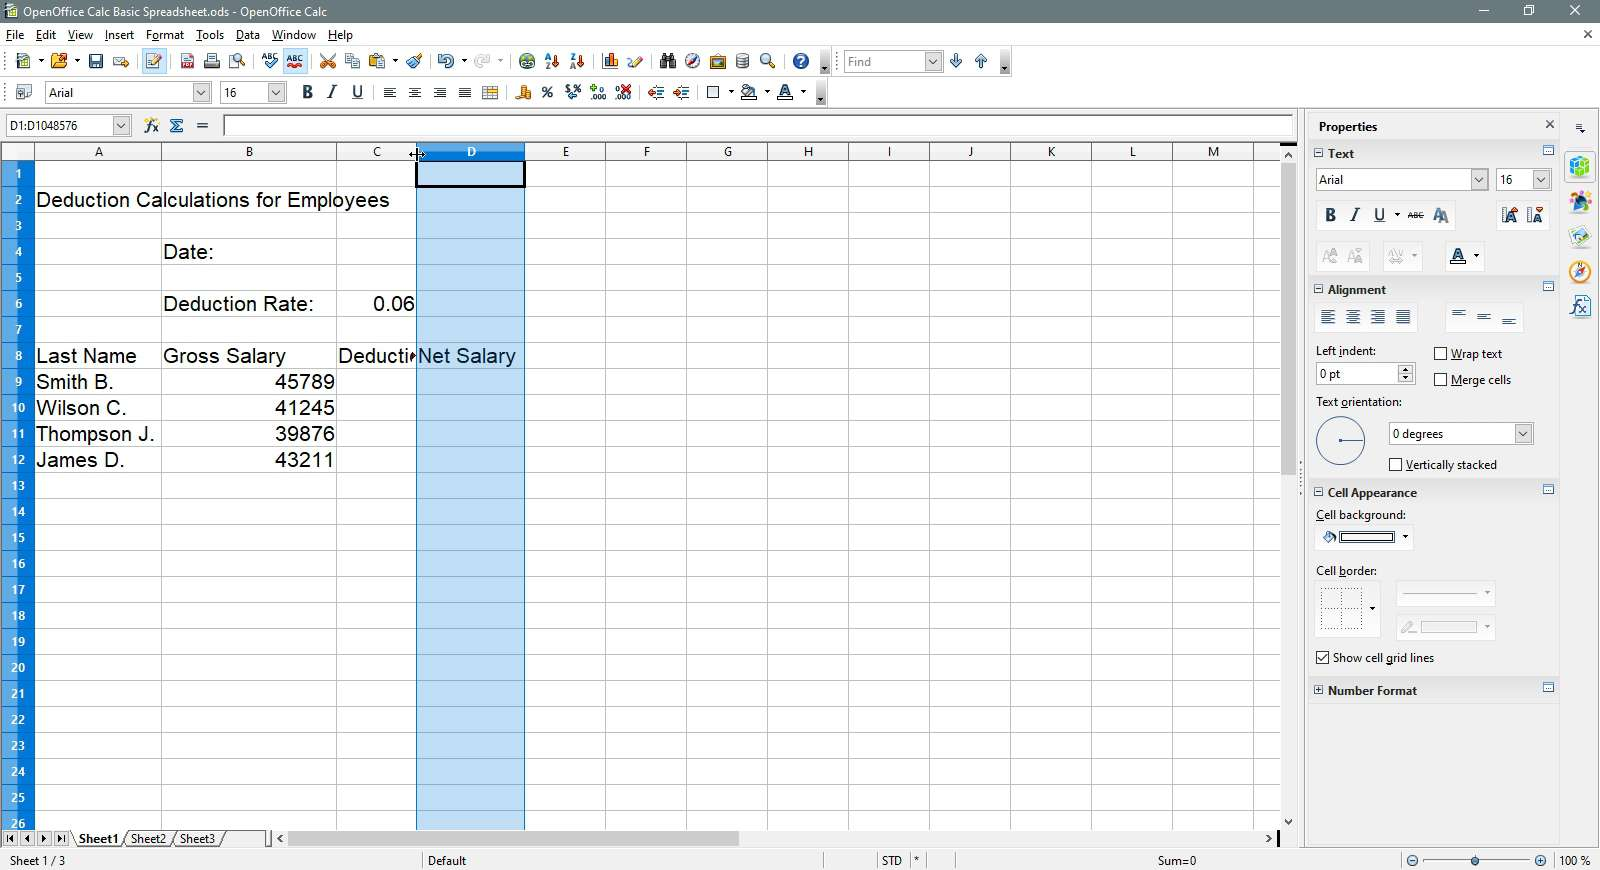 Selecting a column to widen in OpenOffice Calc.